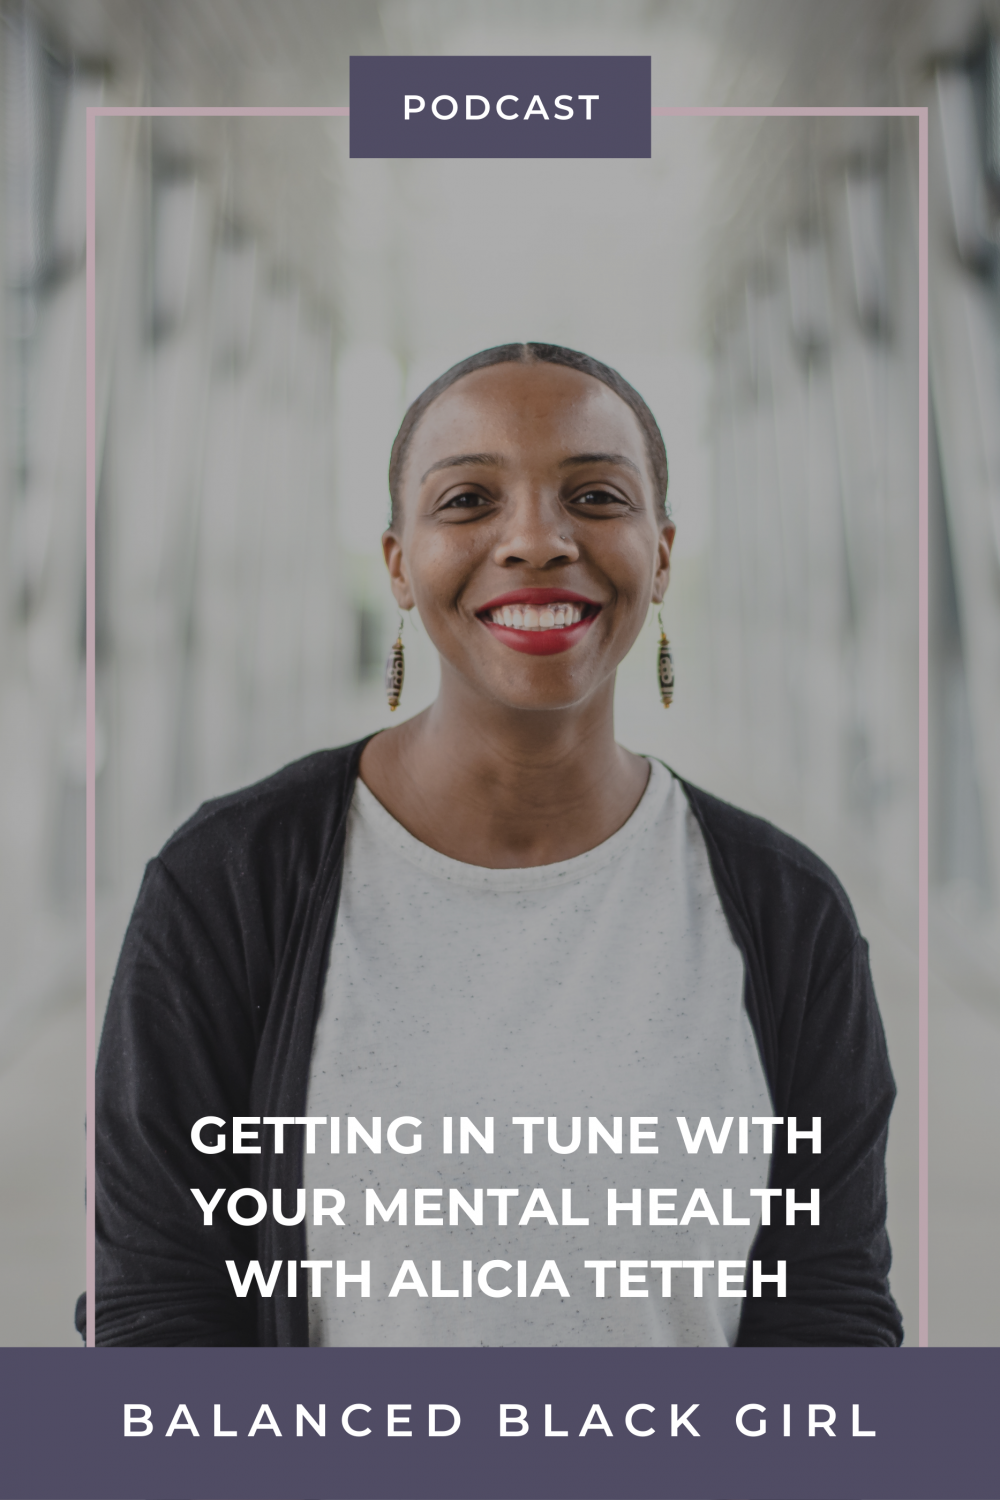 Episode 31: Getting In Tune with Your Mental Health with Alicia Tetteh